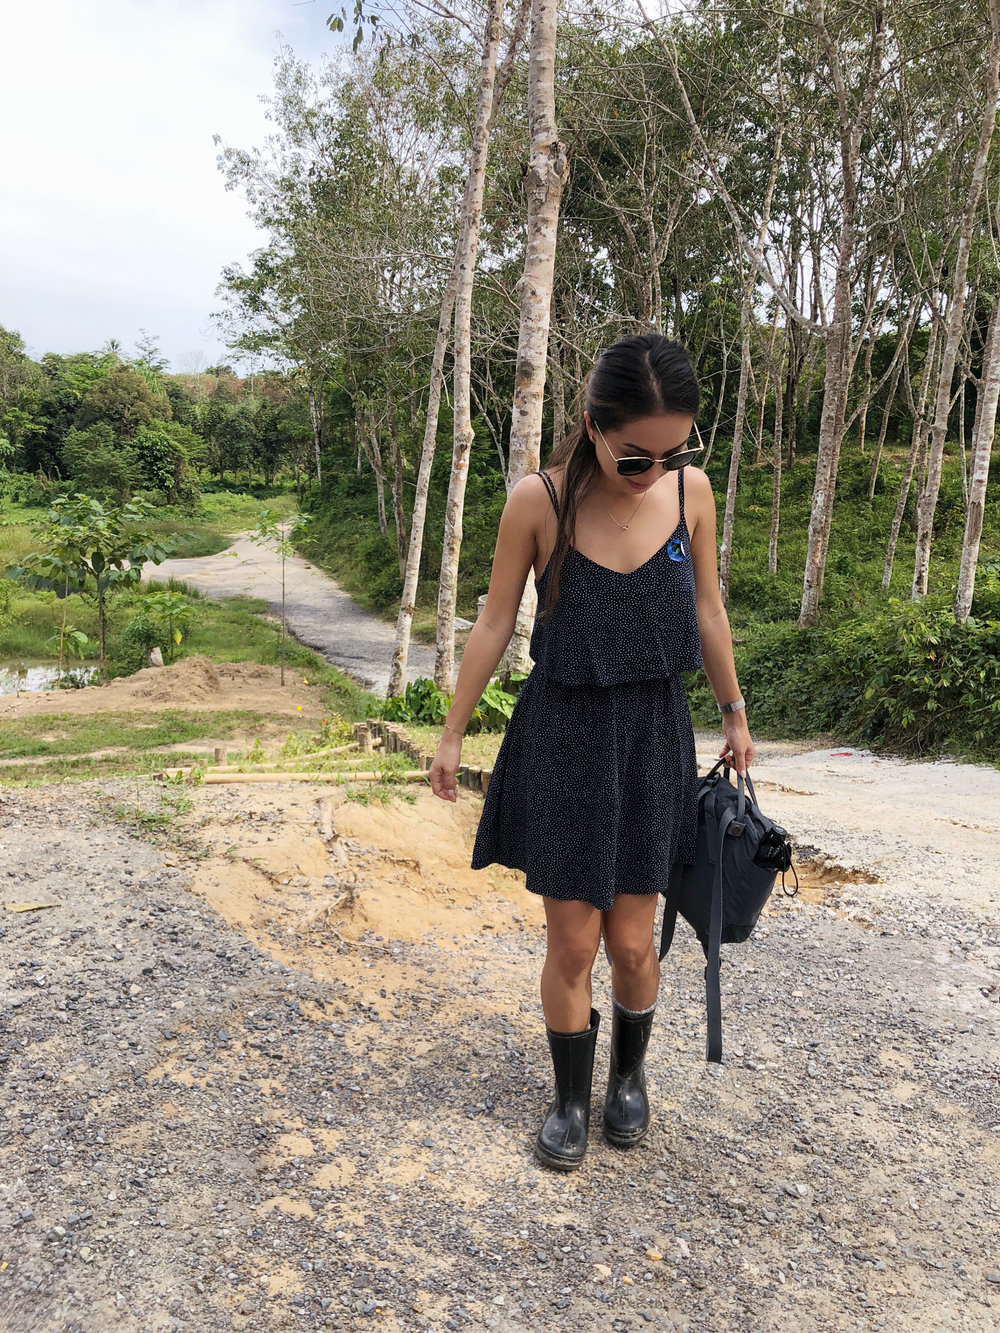 Location: Phuket | Wearing: H&M dress, Fjällräven backpack, Celine sunnies